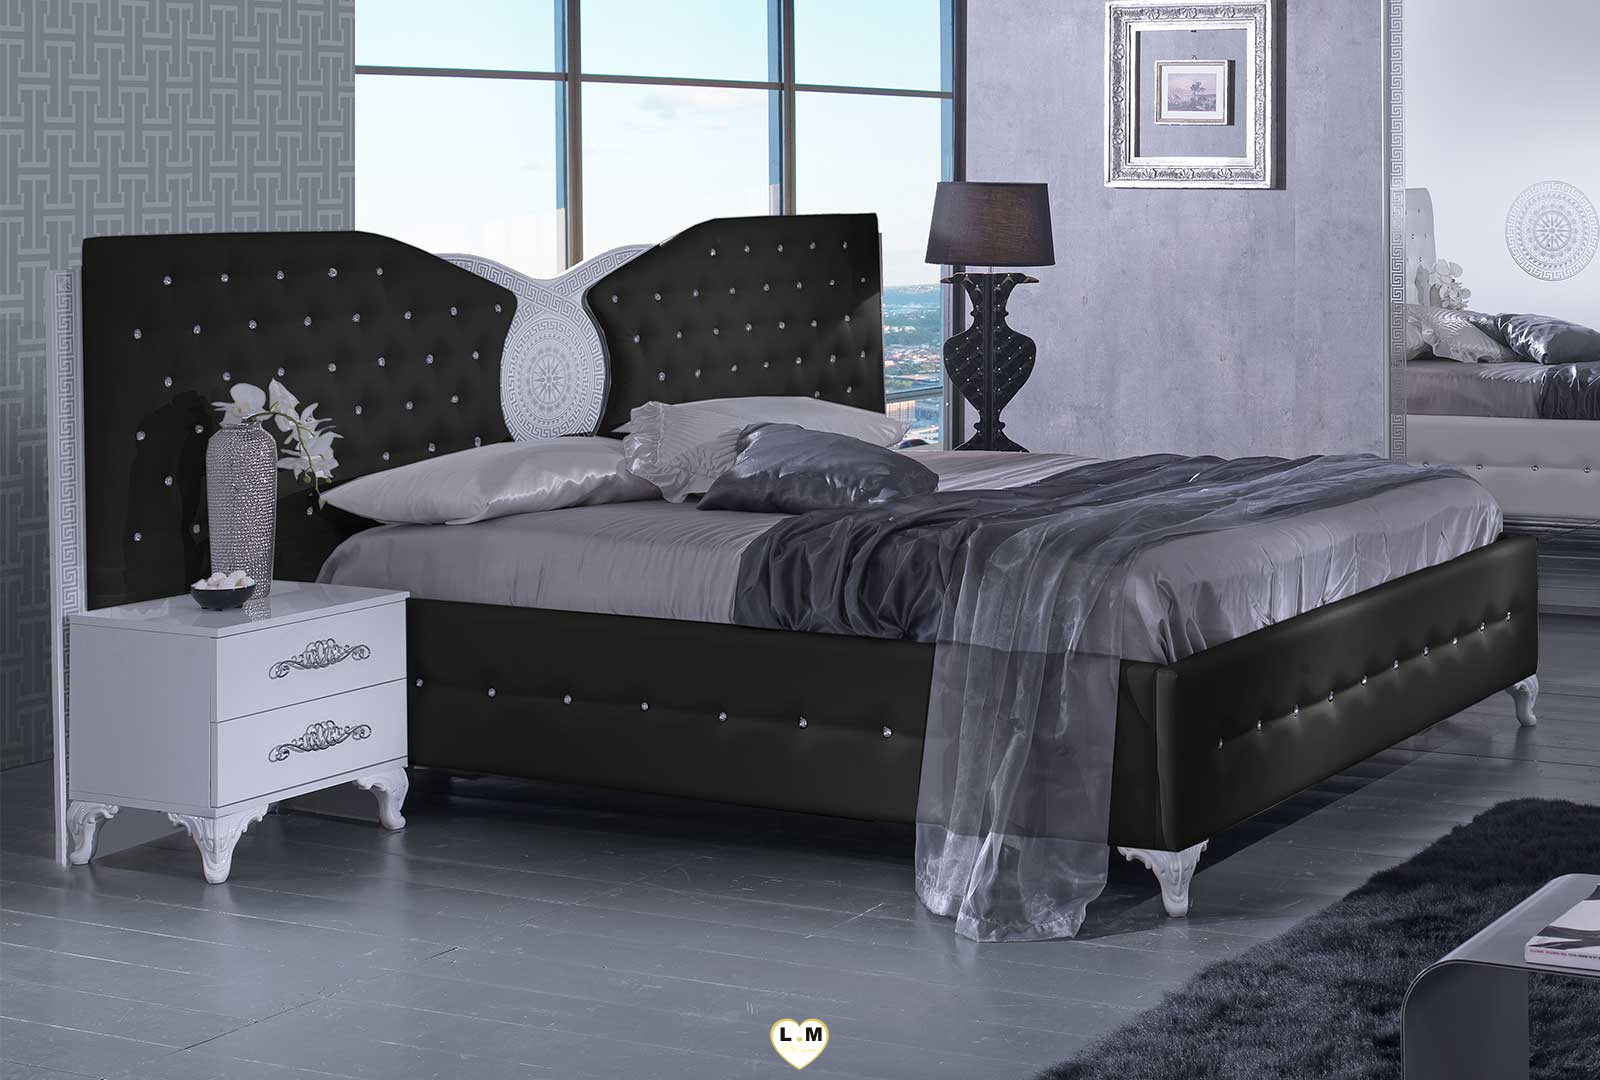 tana noir et blanc chambre a coucher le lit lignemeuble com. Black Bedroom Furniture Sets. Home Design Ideas